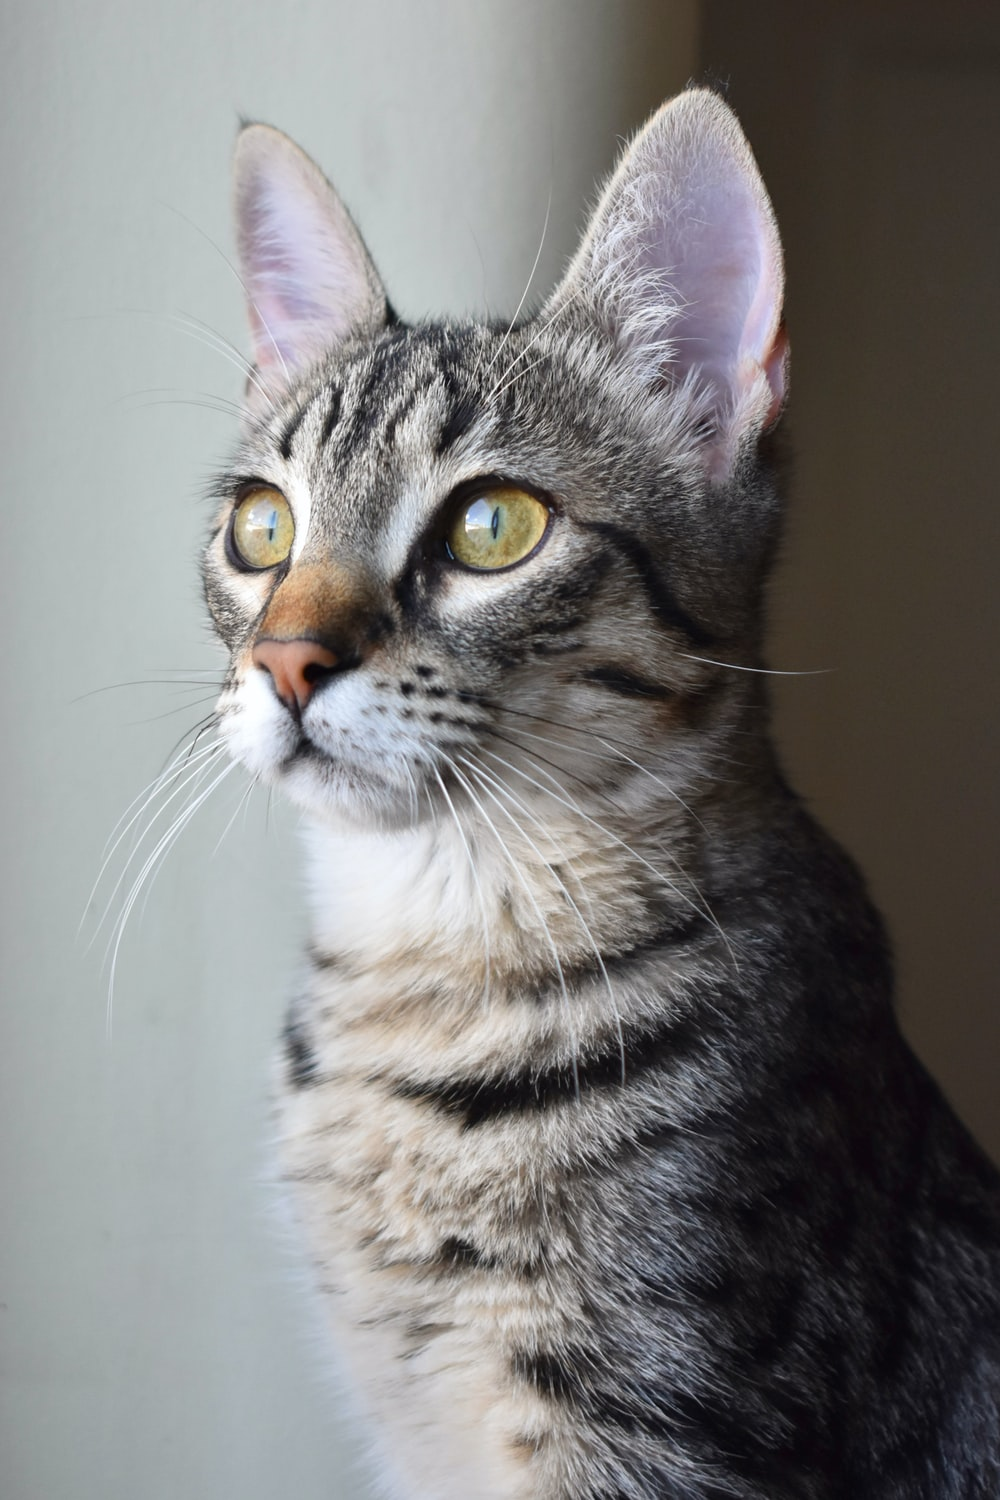 close-up photo of brown tabby kitten